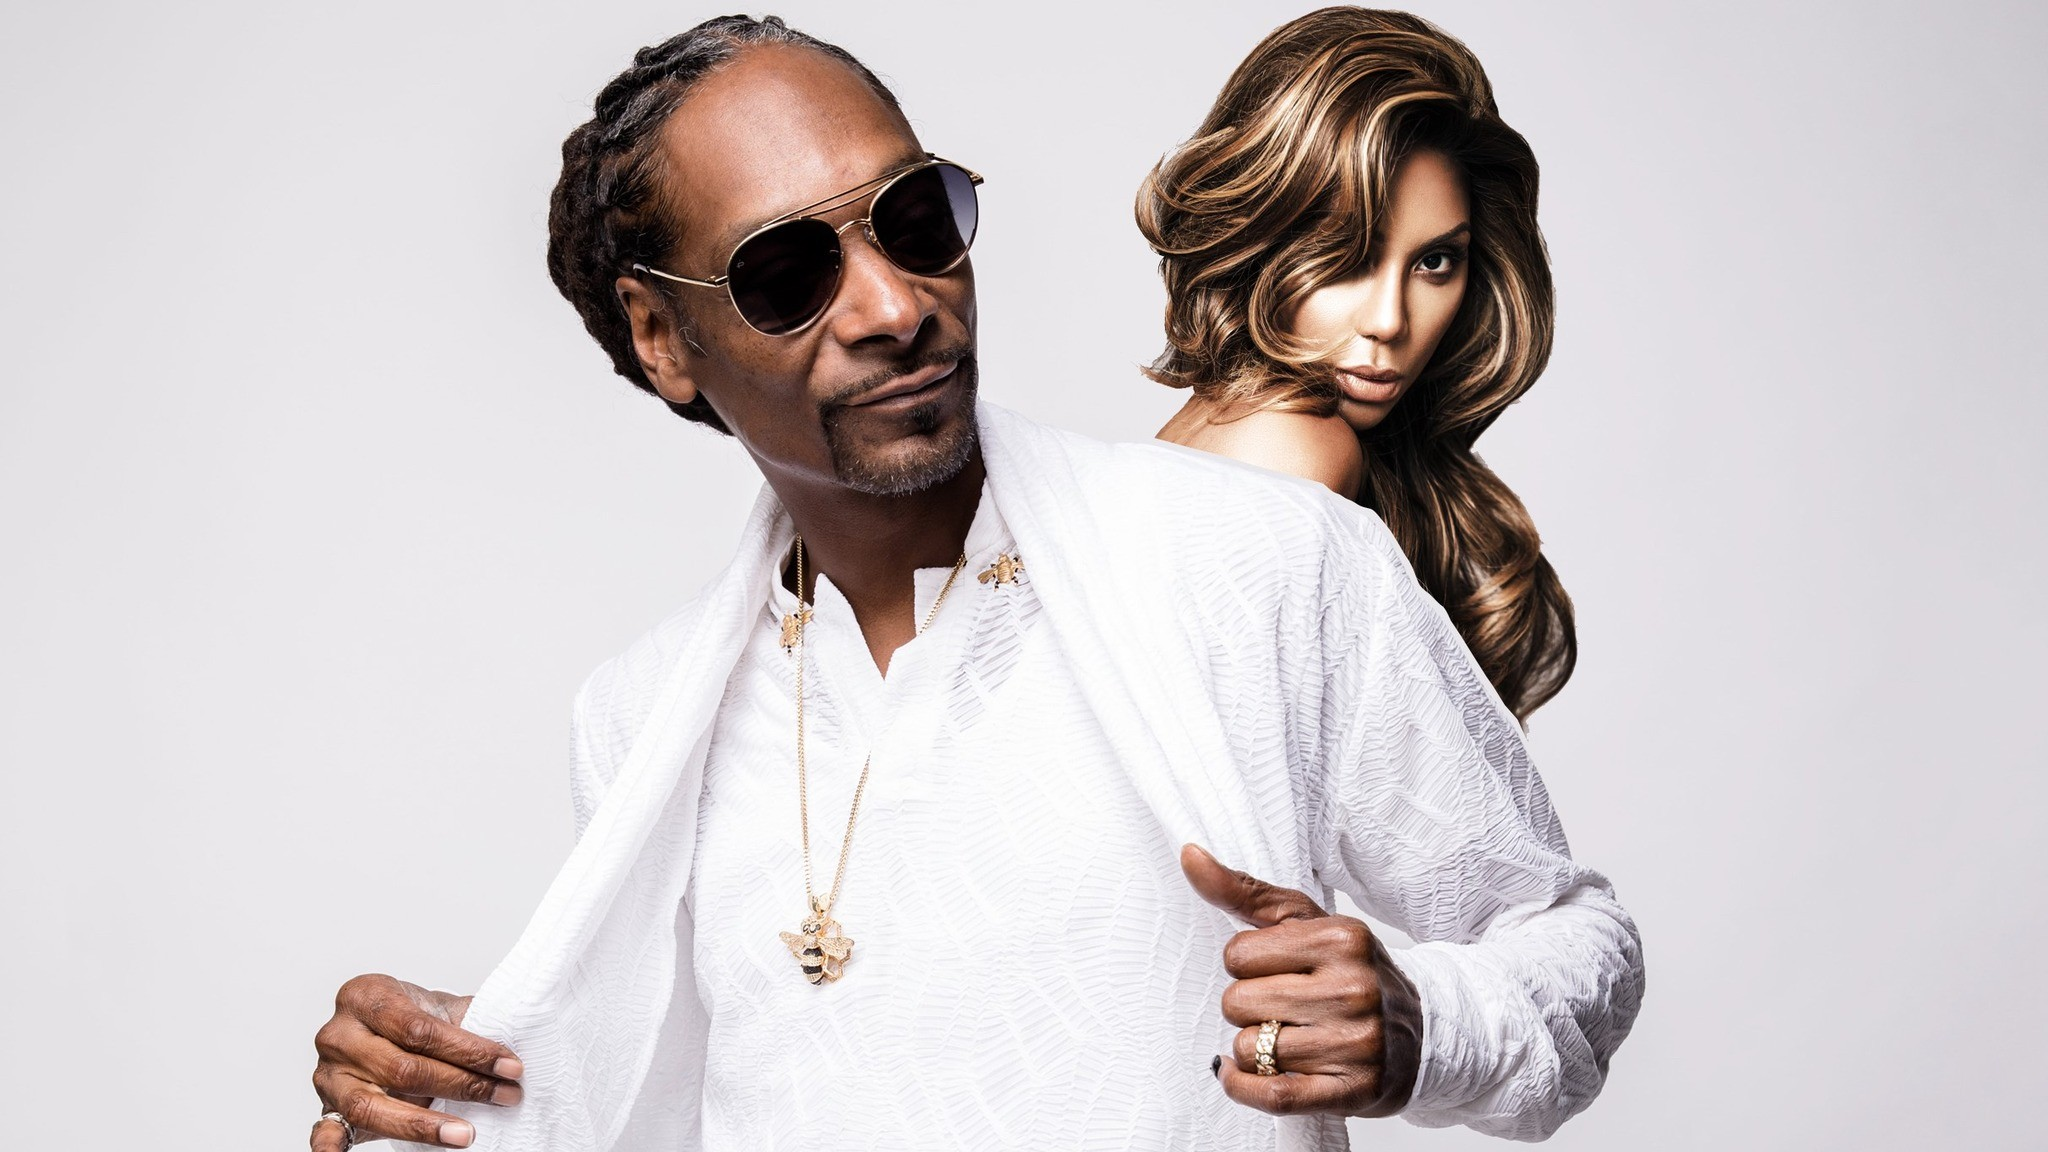 tamar-braxton-is-back-with-her-brother-snoop-dogg-check-out-their-funny-photo-together